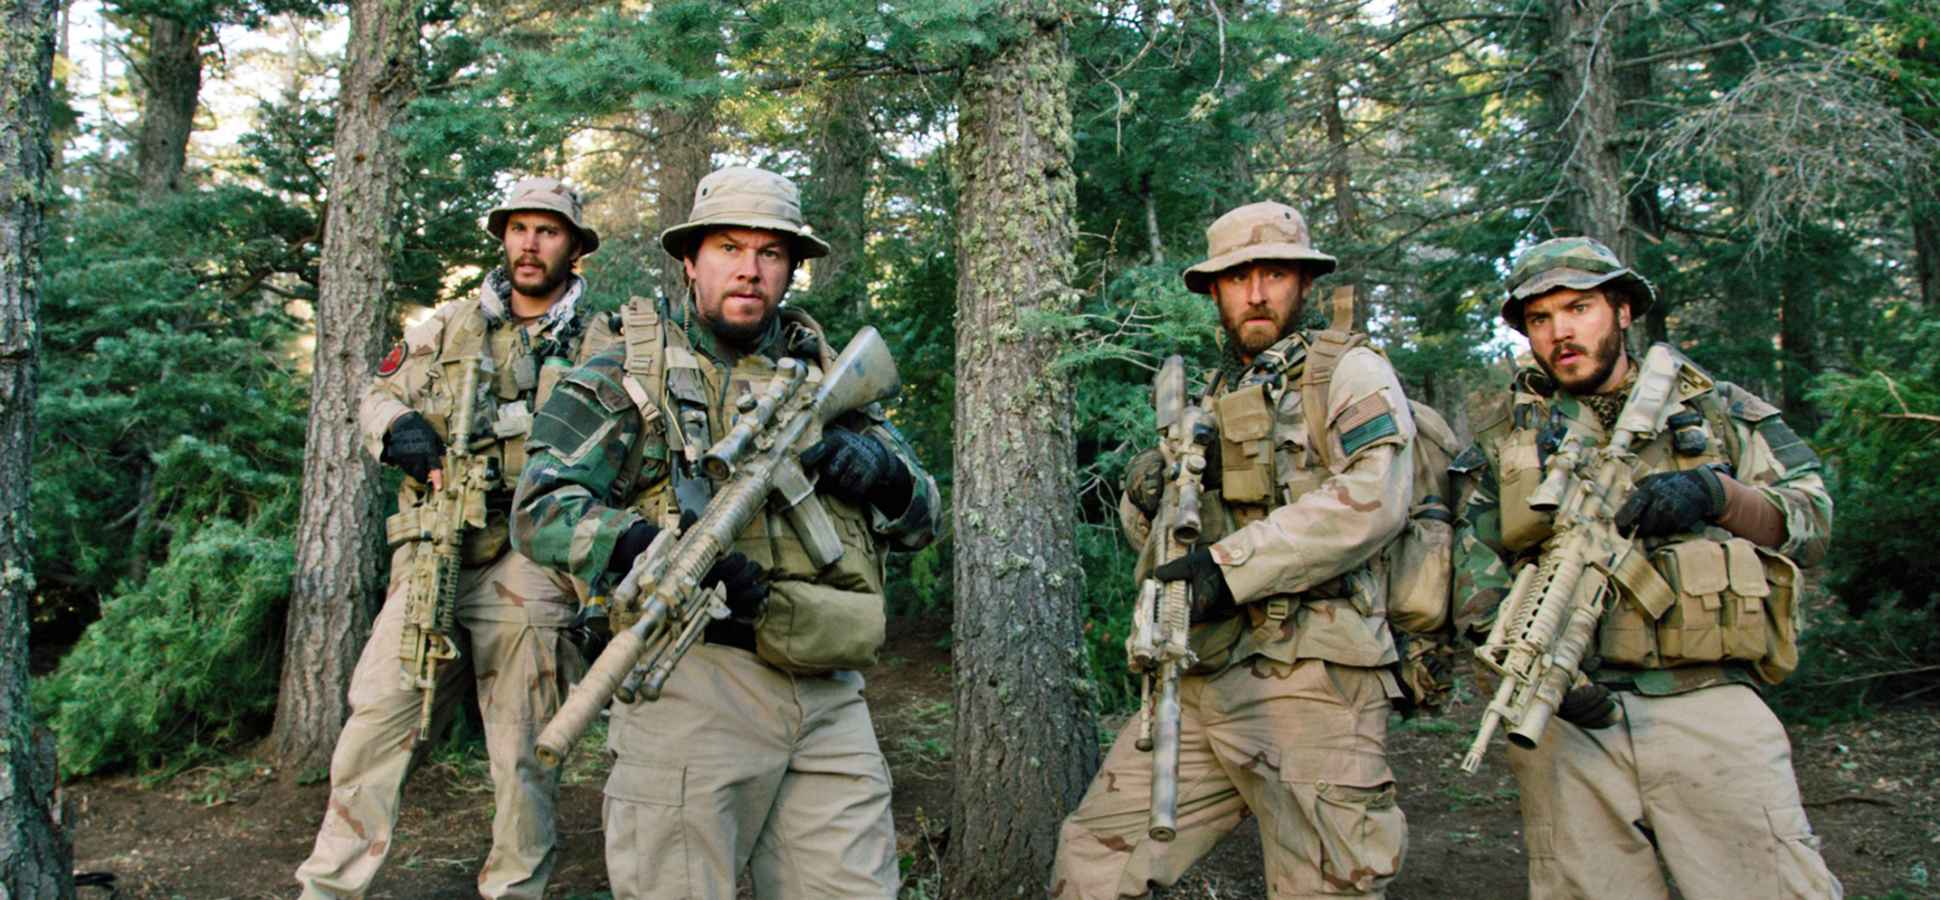 Lone Survivor' Decision-Making and the Darker Side Of Leadership